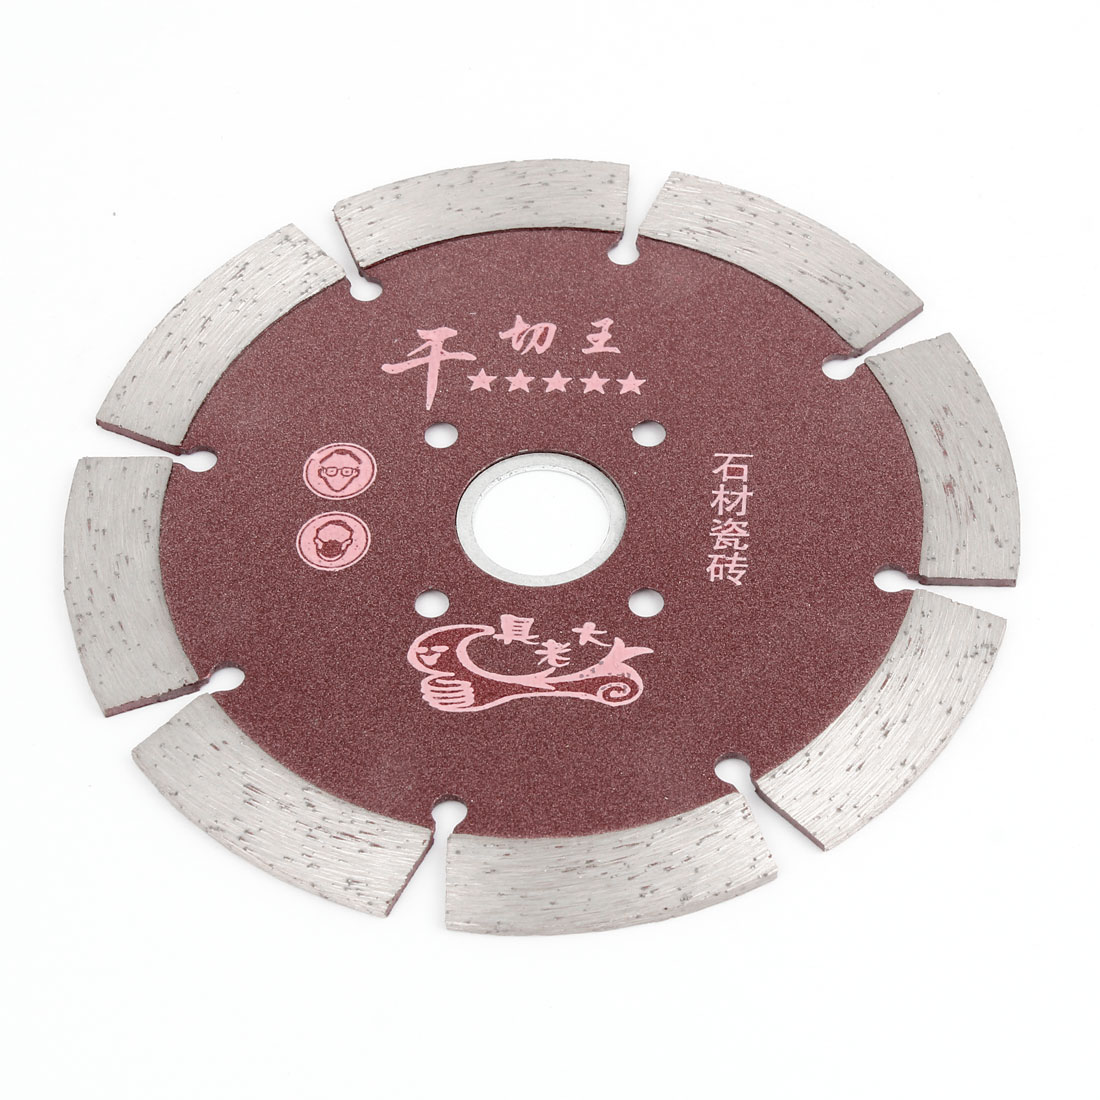 2mm Thickness Dia Double Side Glass Diamond Saw Cutter Cutting Disc